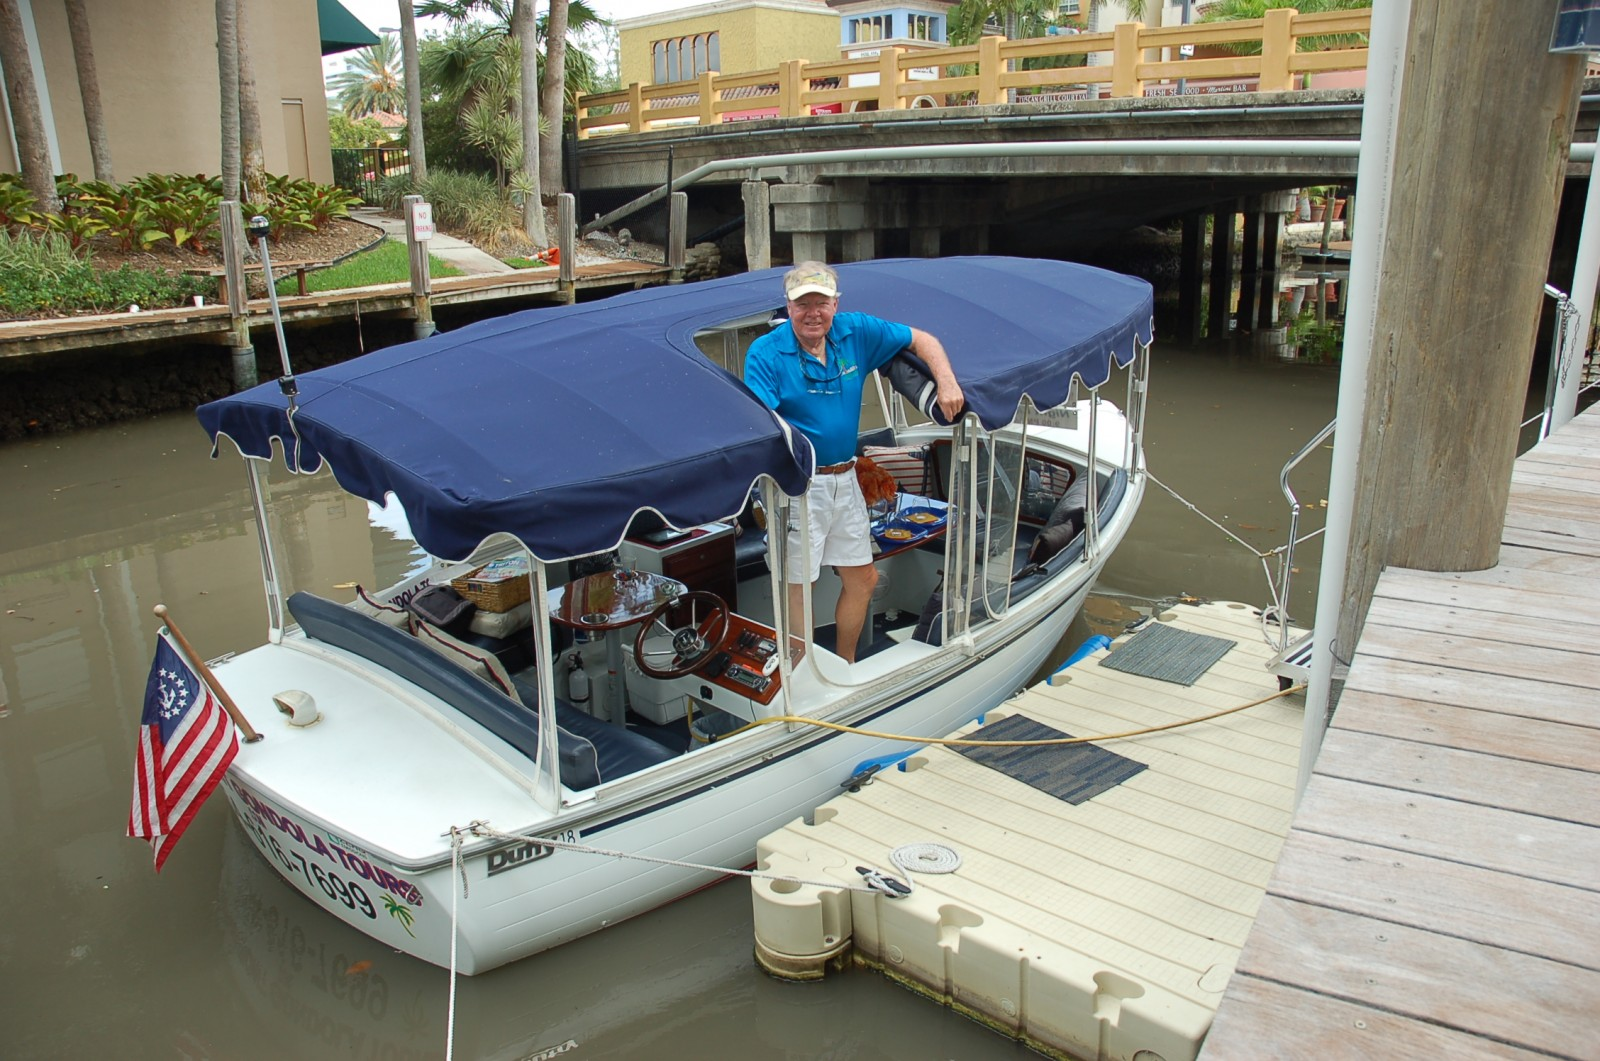 Former yacht Capt. Roy Conklin works at much slower speed than during his racing and yachting careers. He now runs Riverfront Gondola Tours in Ft. Lauderdale.